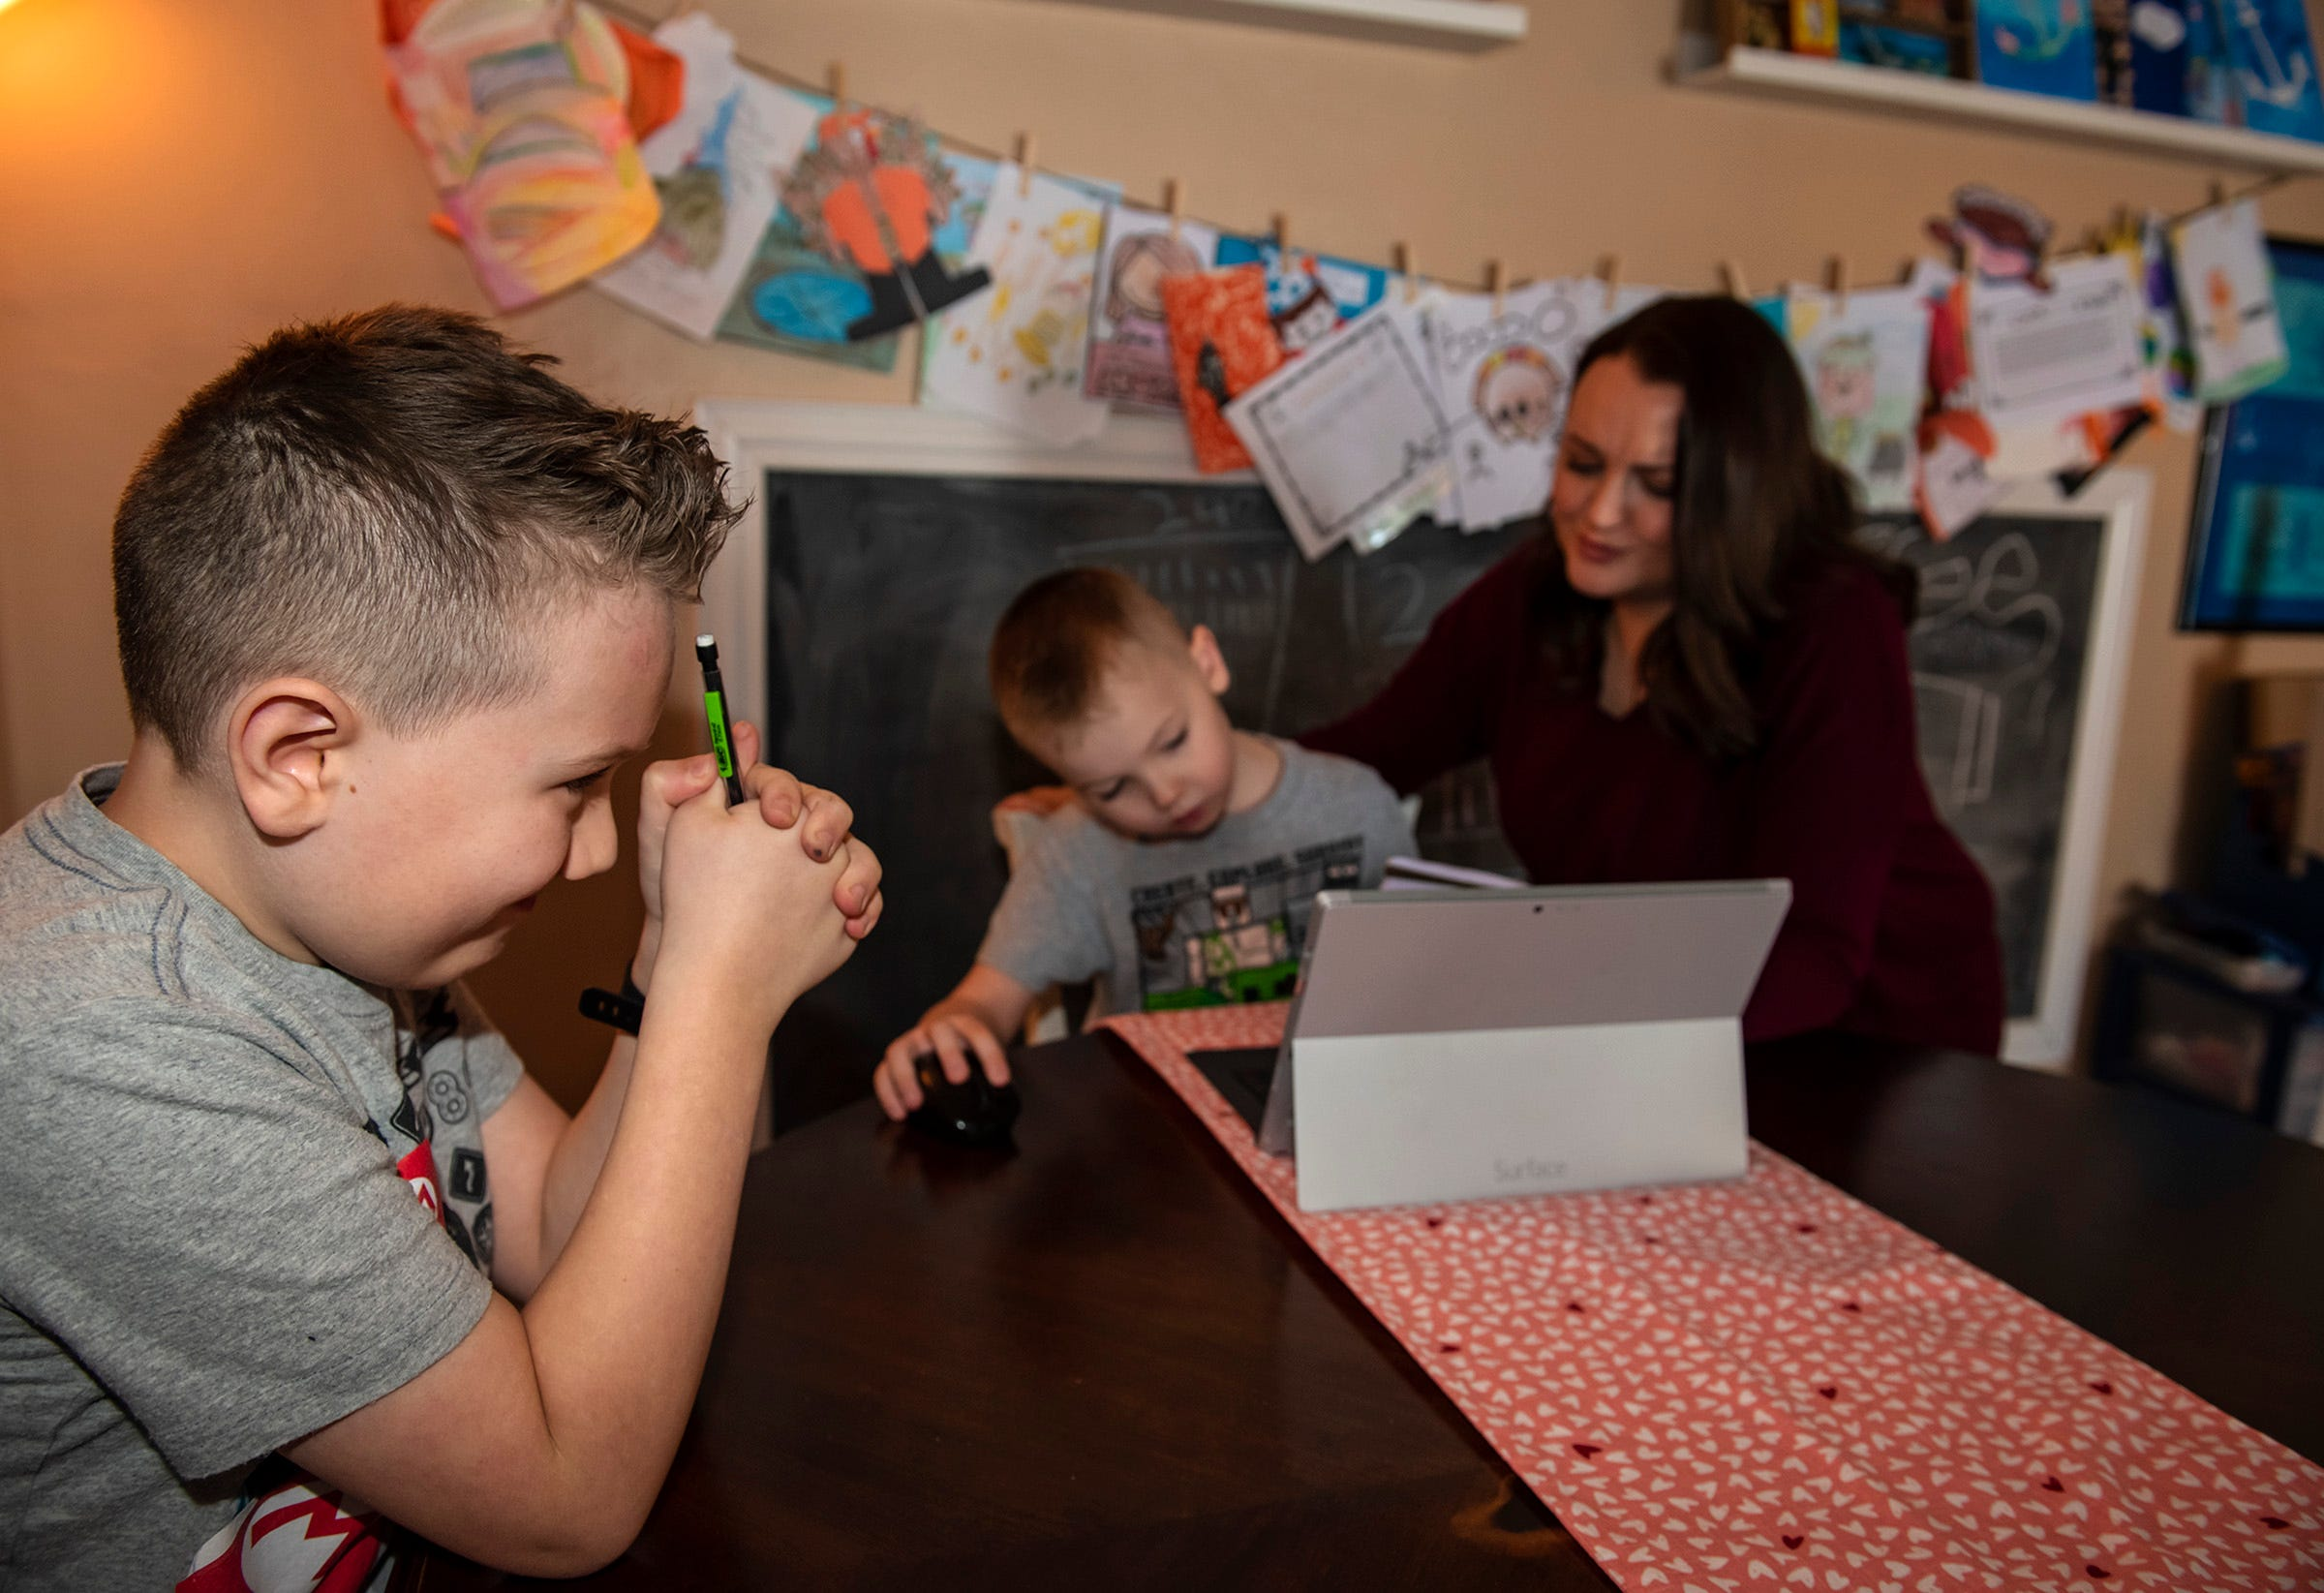 Cameron Baughman, 8, left, thinks hard about a multiplication problem given him by his mom, Jamie Baughman, who is also helping her younger son Gage, 6, do his homework in their Rochester Township home.